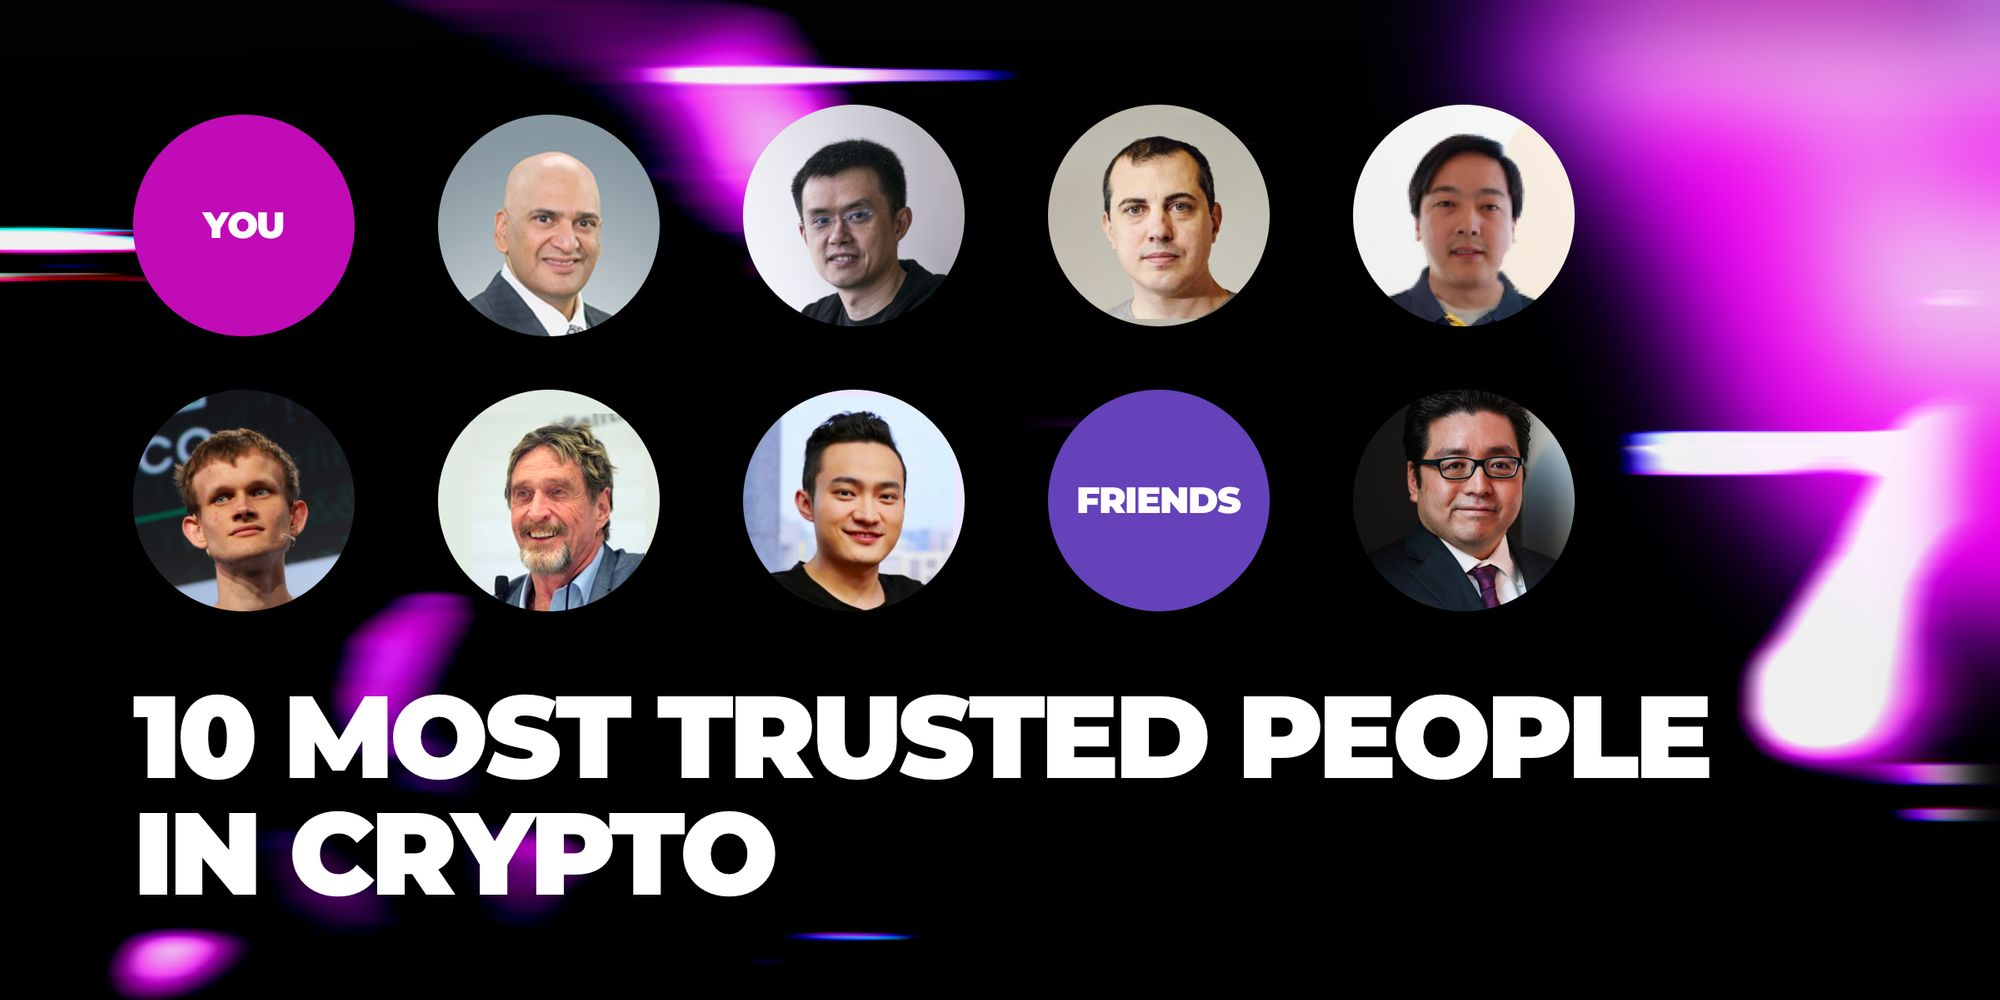 The 10 most trusted people in crypto